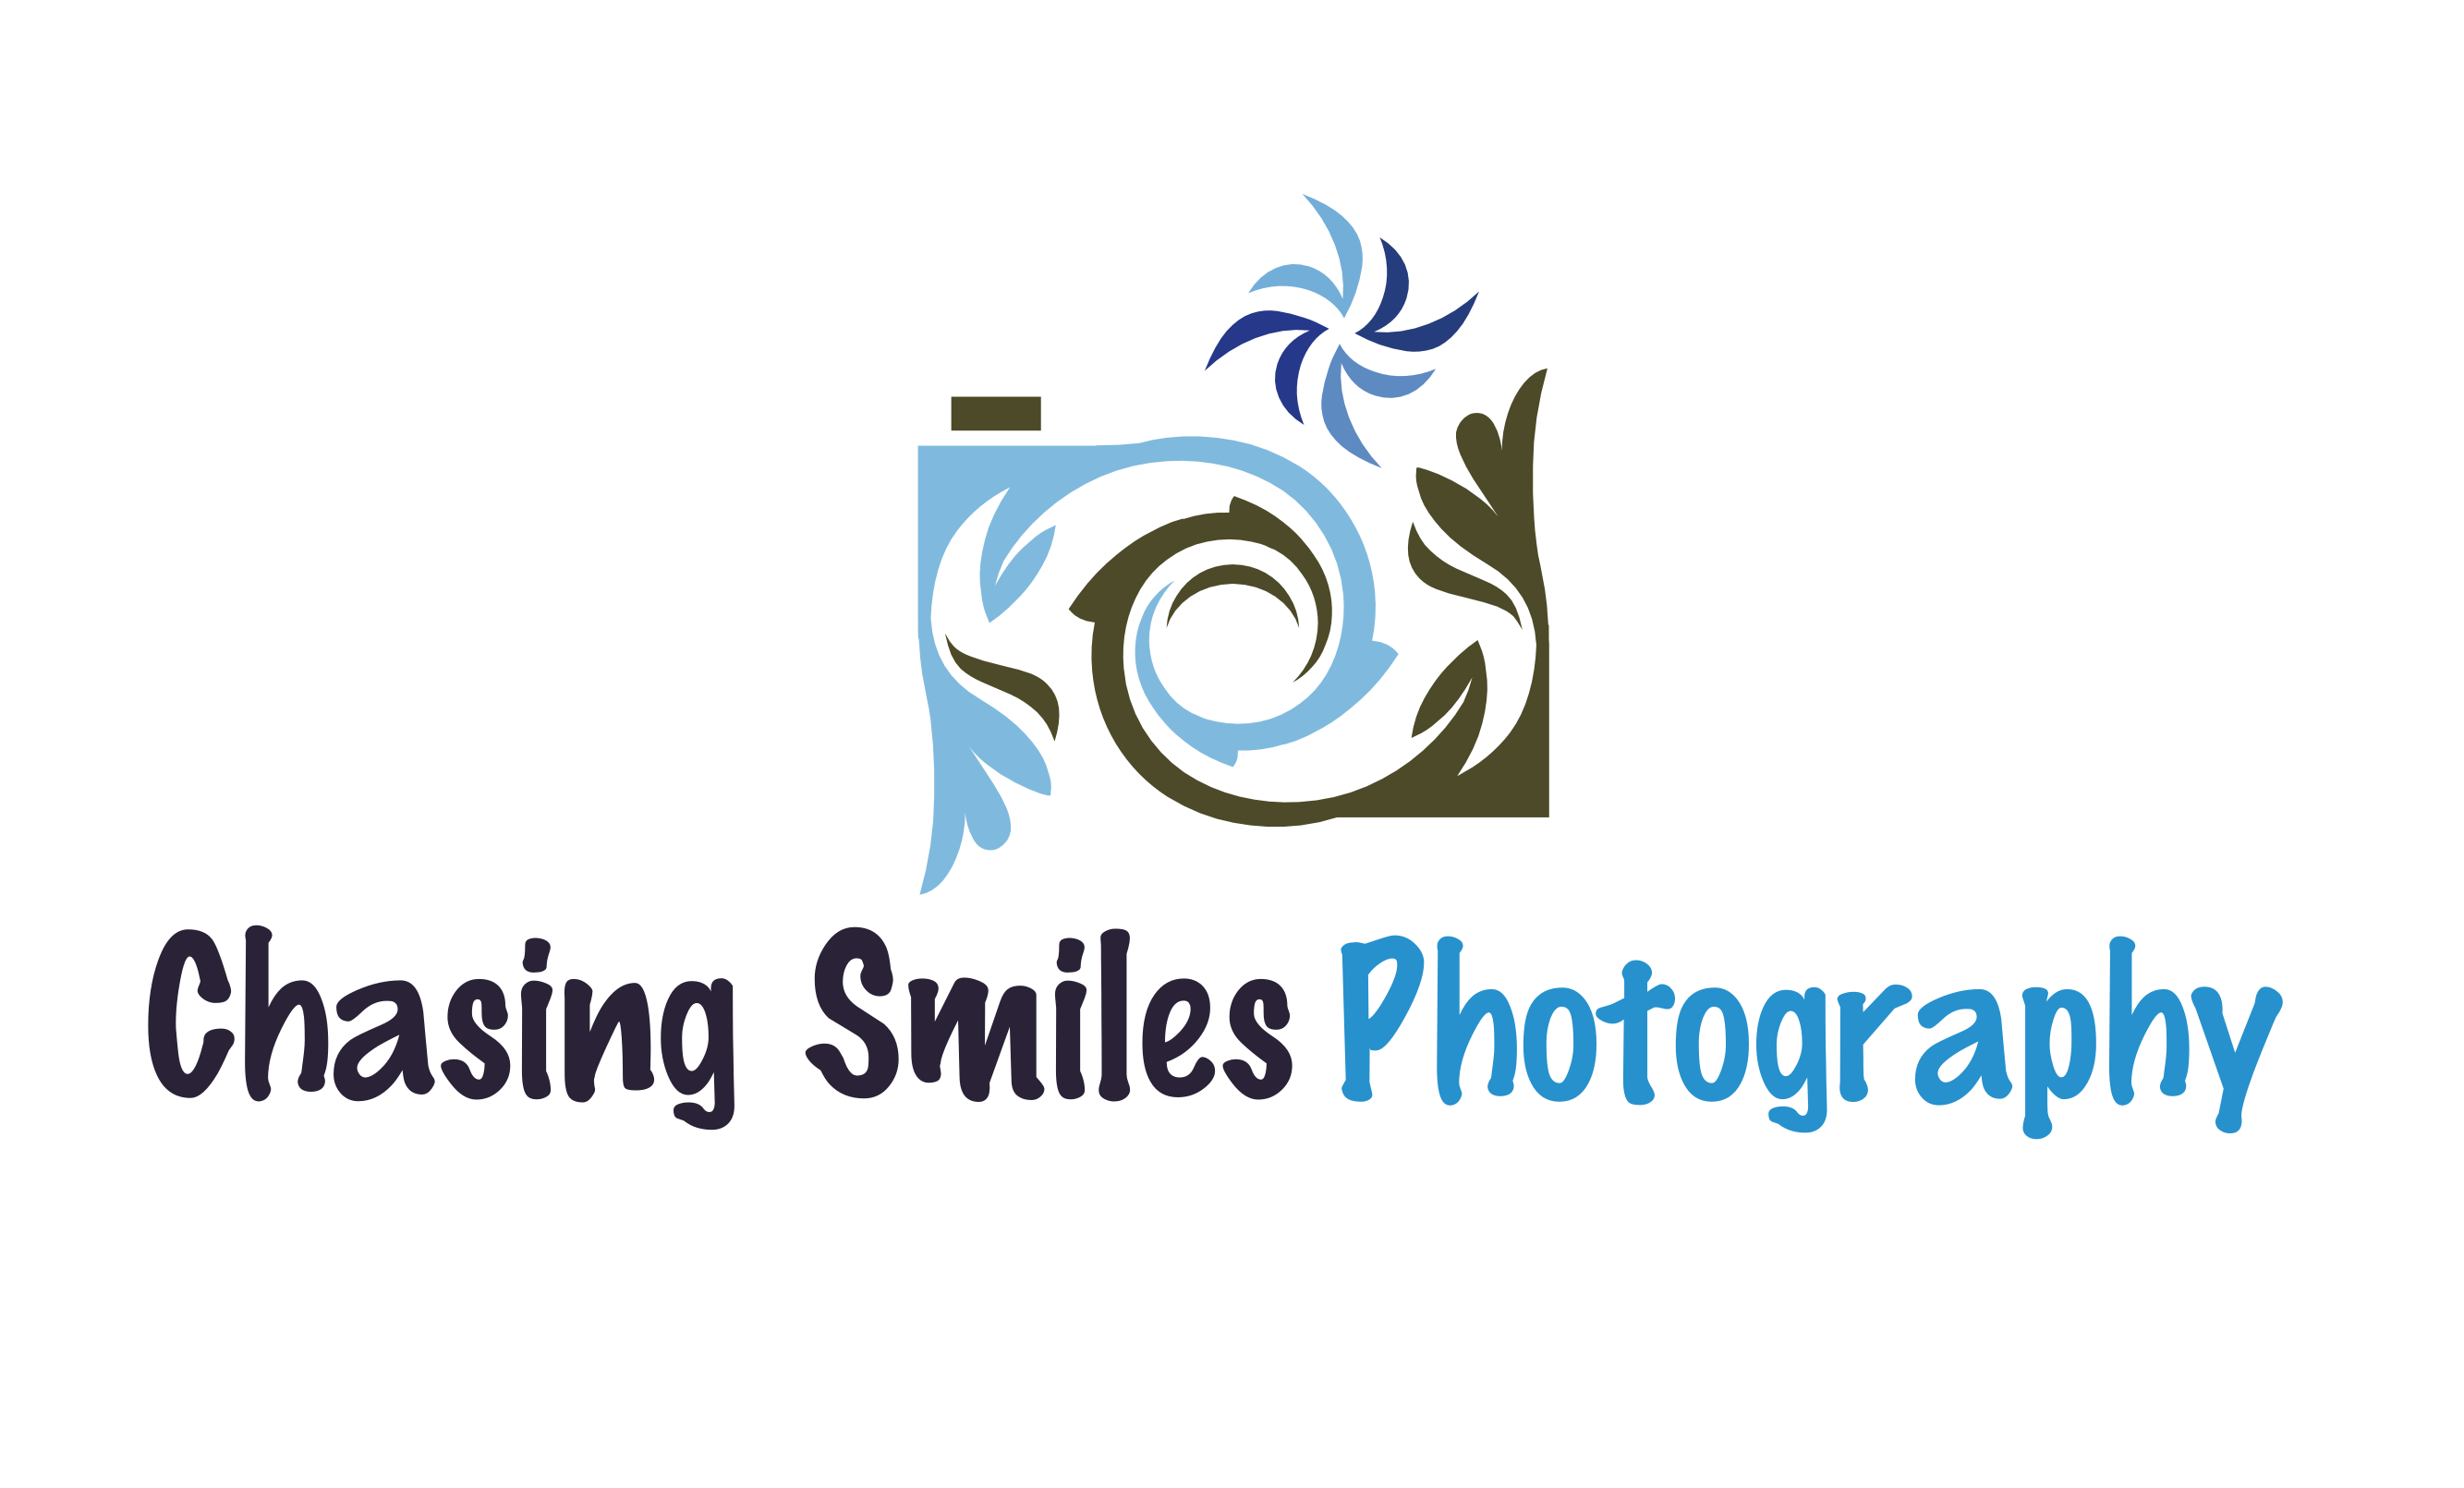 Chasing Smiles Photography - Liverpool, Merseyside L14 6UF - 07495 882017 | ShowMeLocal.com